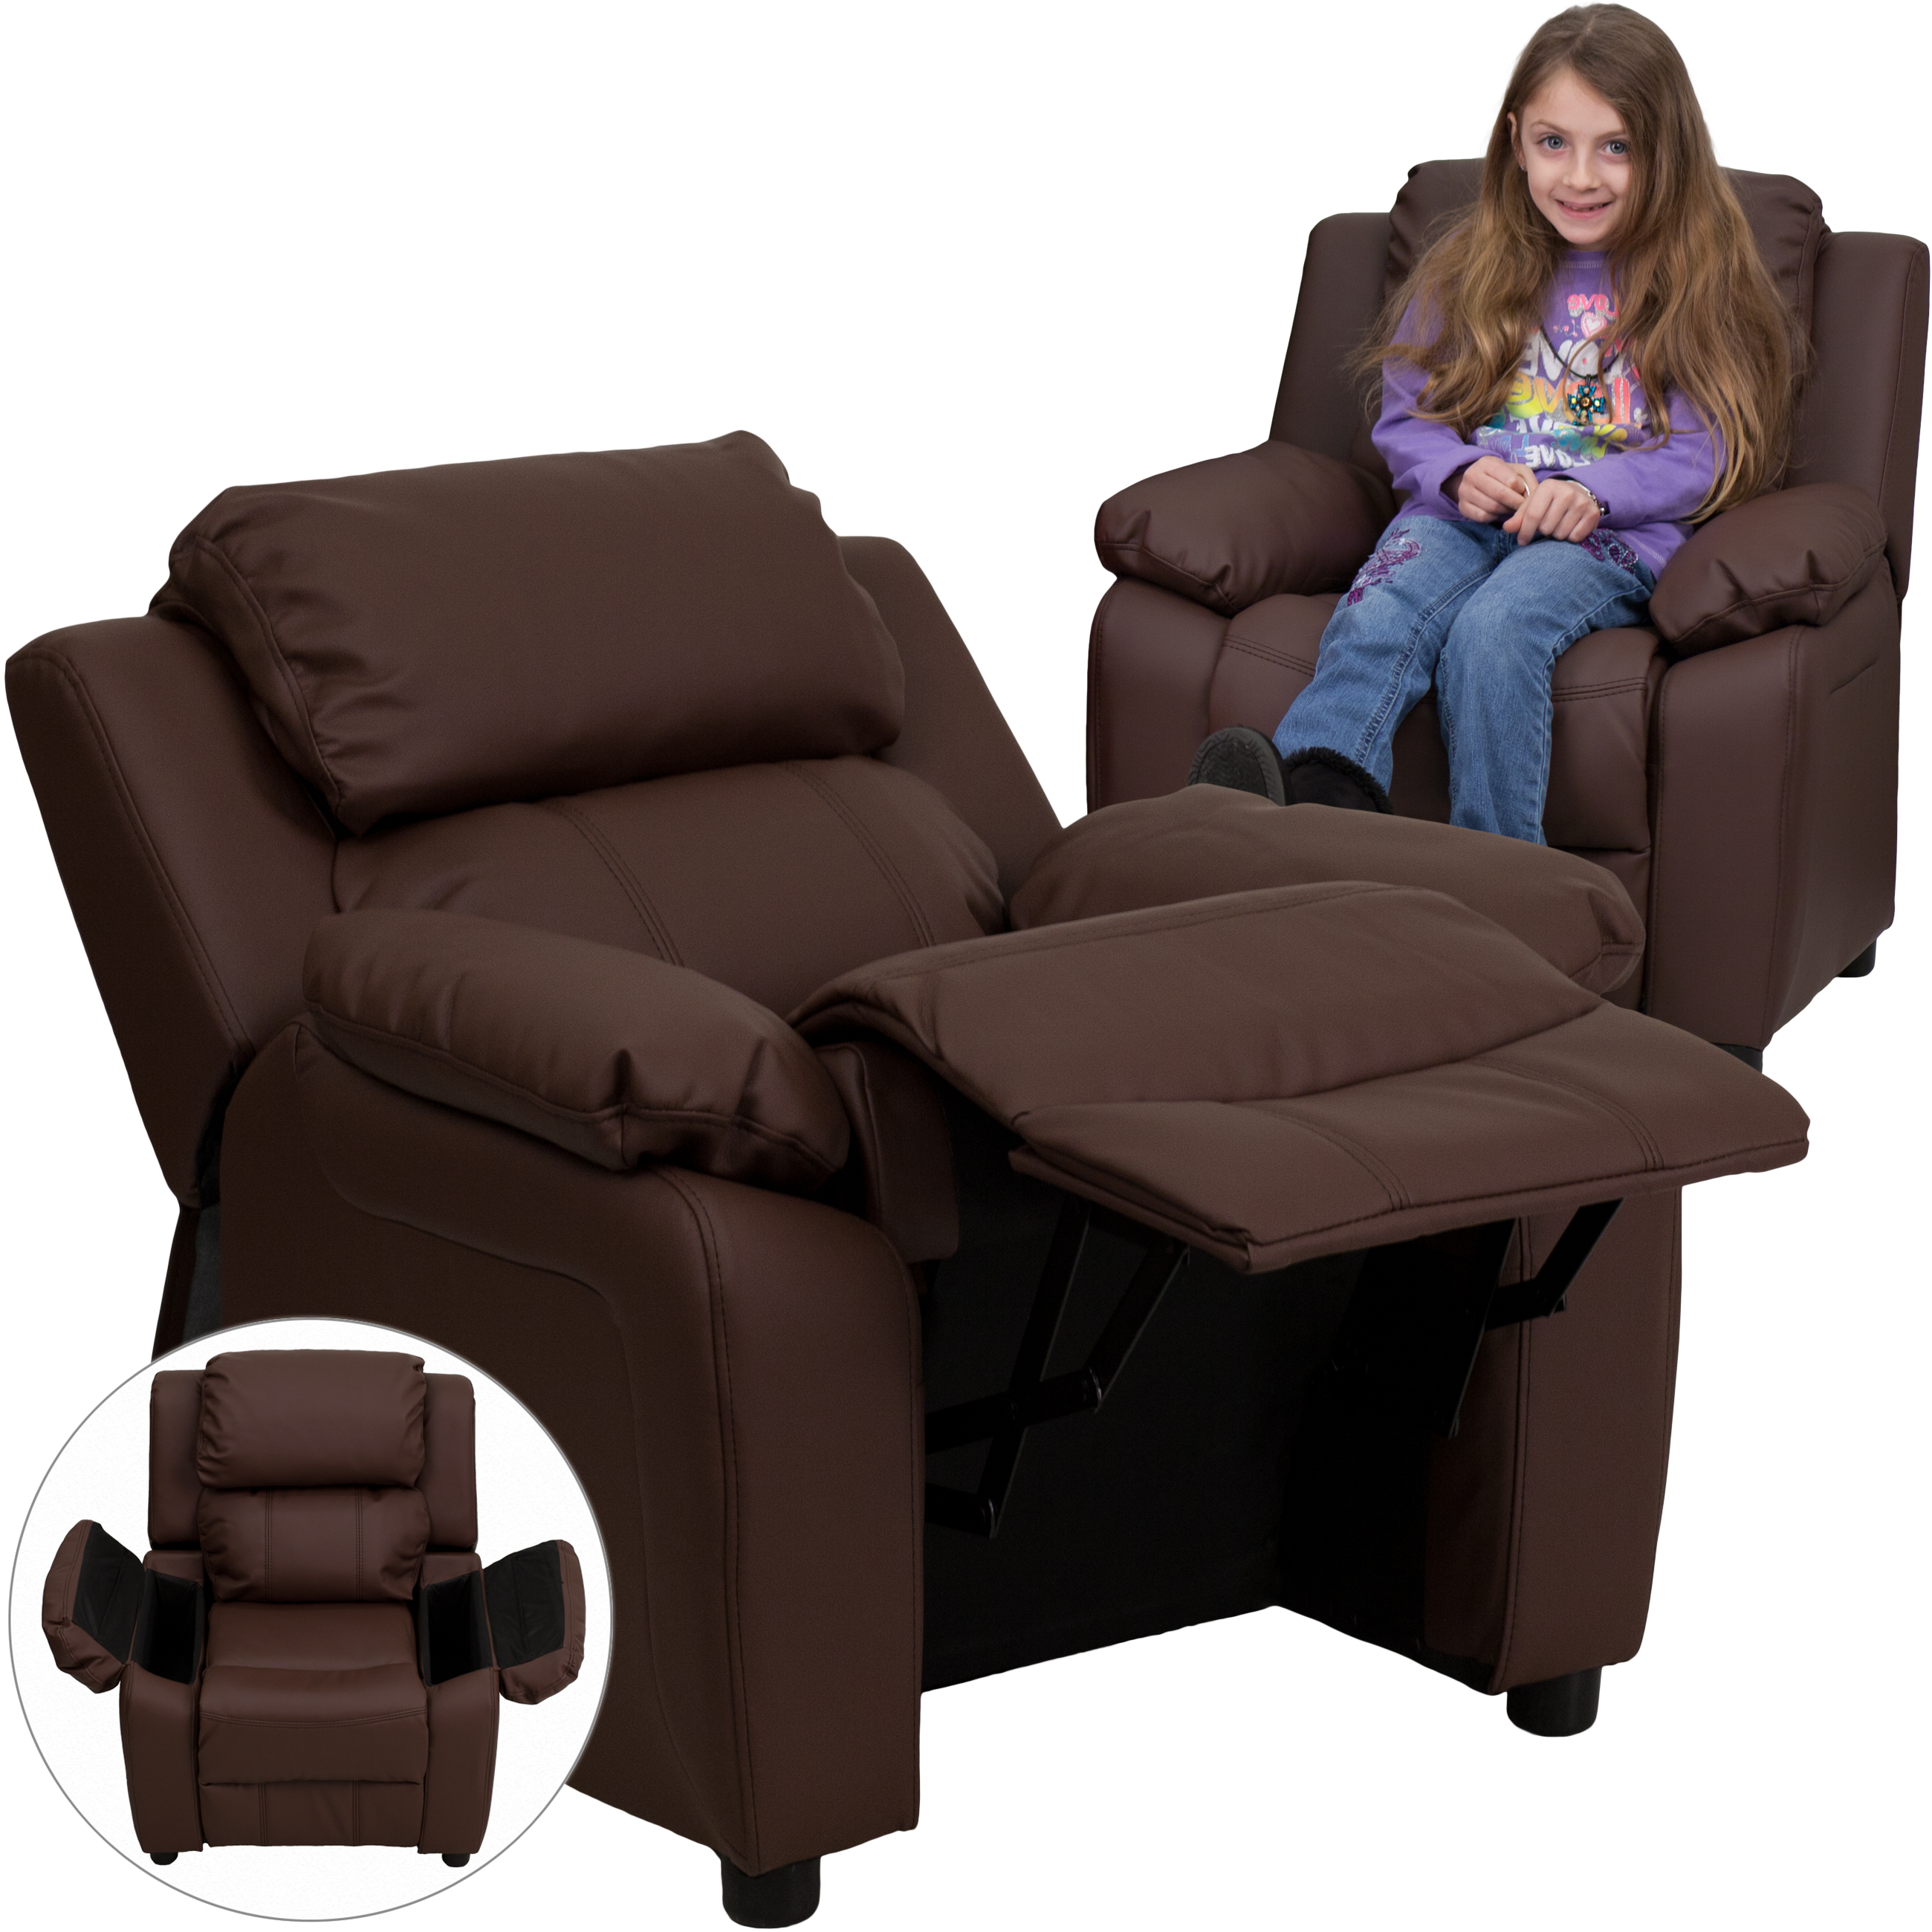 Deluxe Padded Contemporary Brown Leather Kids Recliner with Storage Arms  sc 1 st  Walmart & Deluxe Padded Contemporary Brown Leather Kids Recliner with ... islam-shia.org